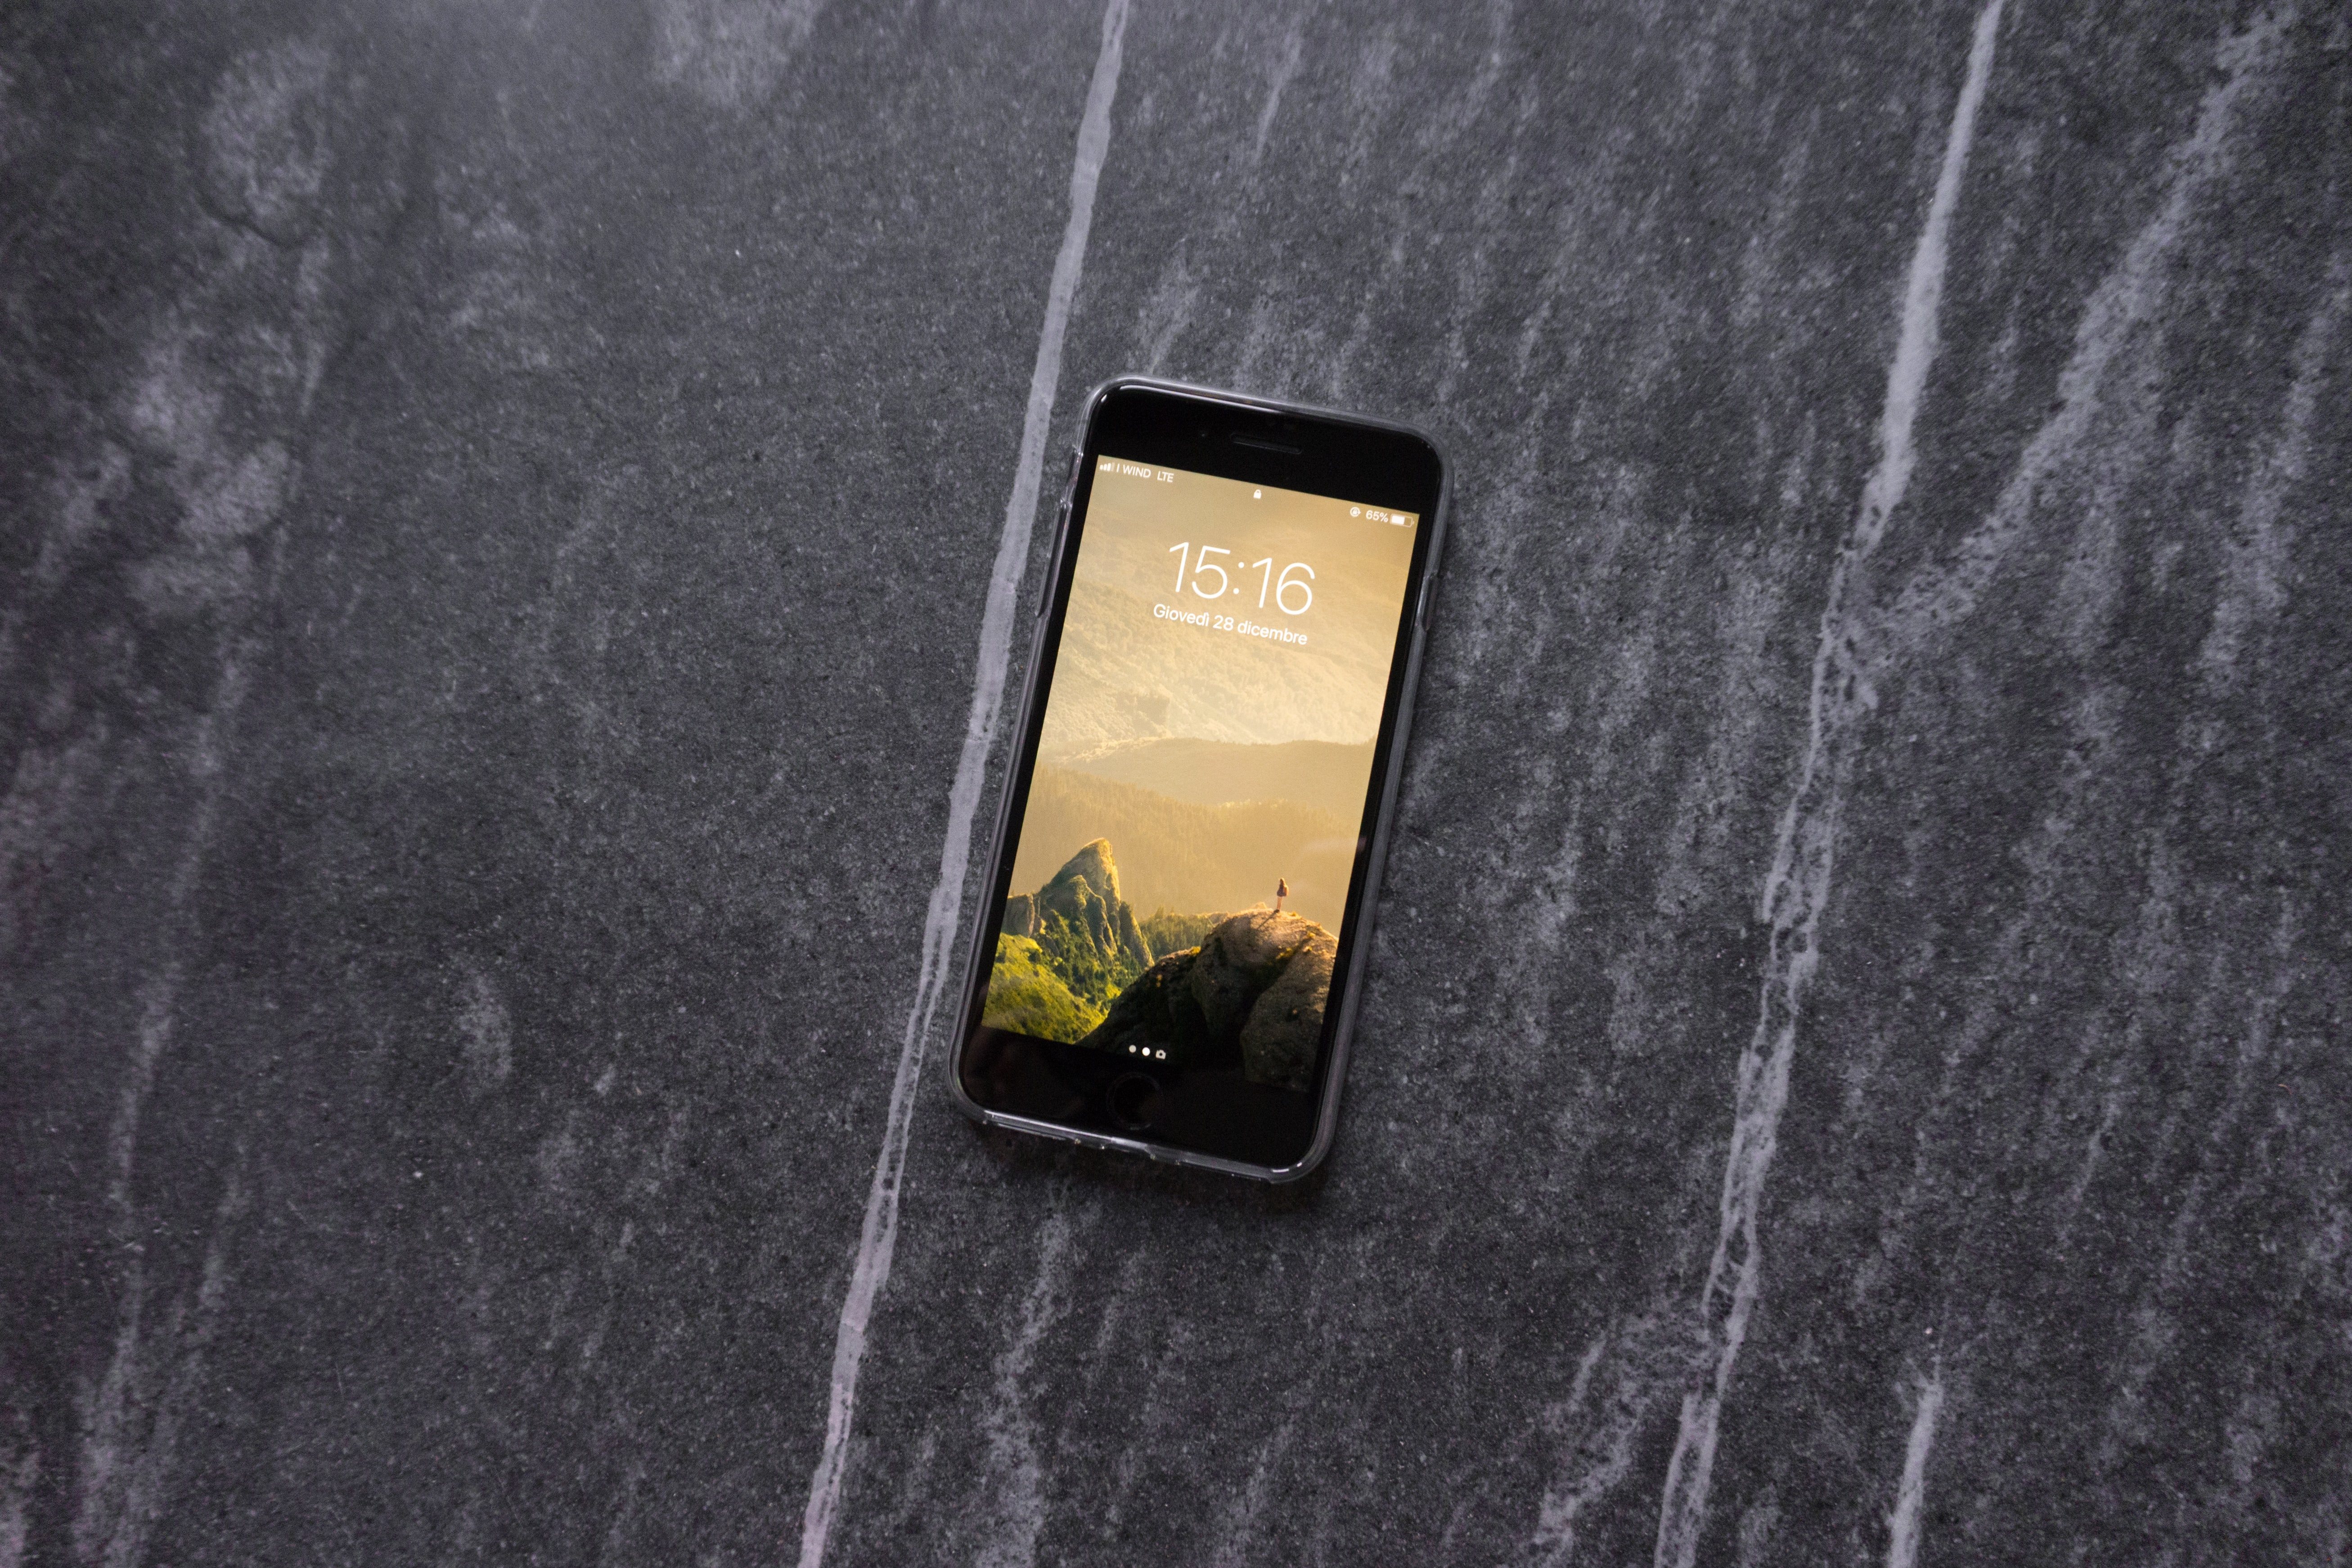 space gray iPhone 6 on tabletop